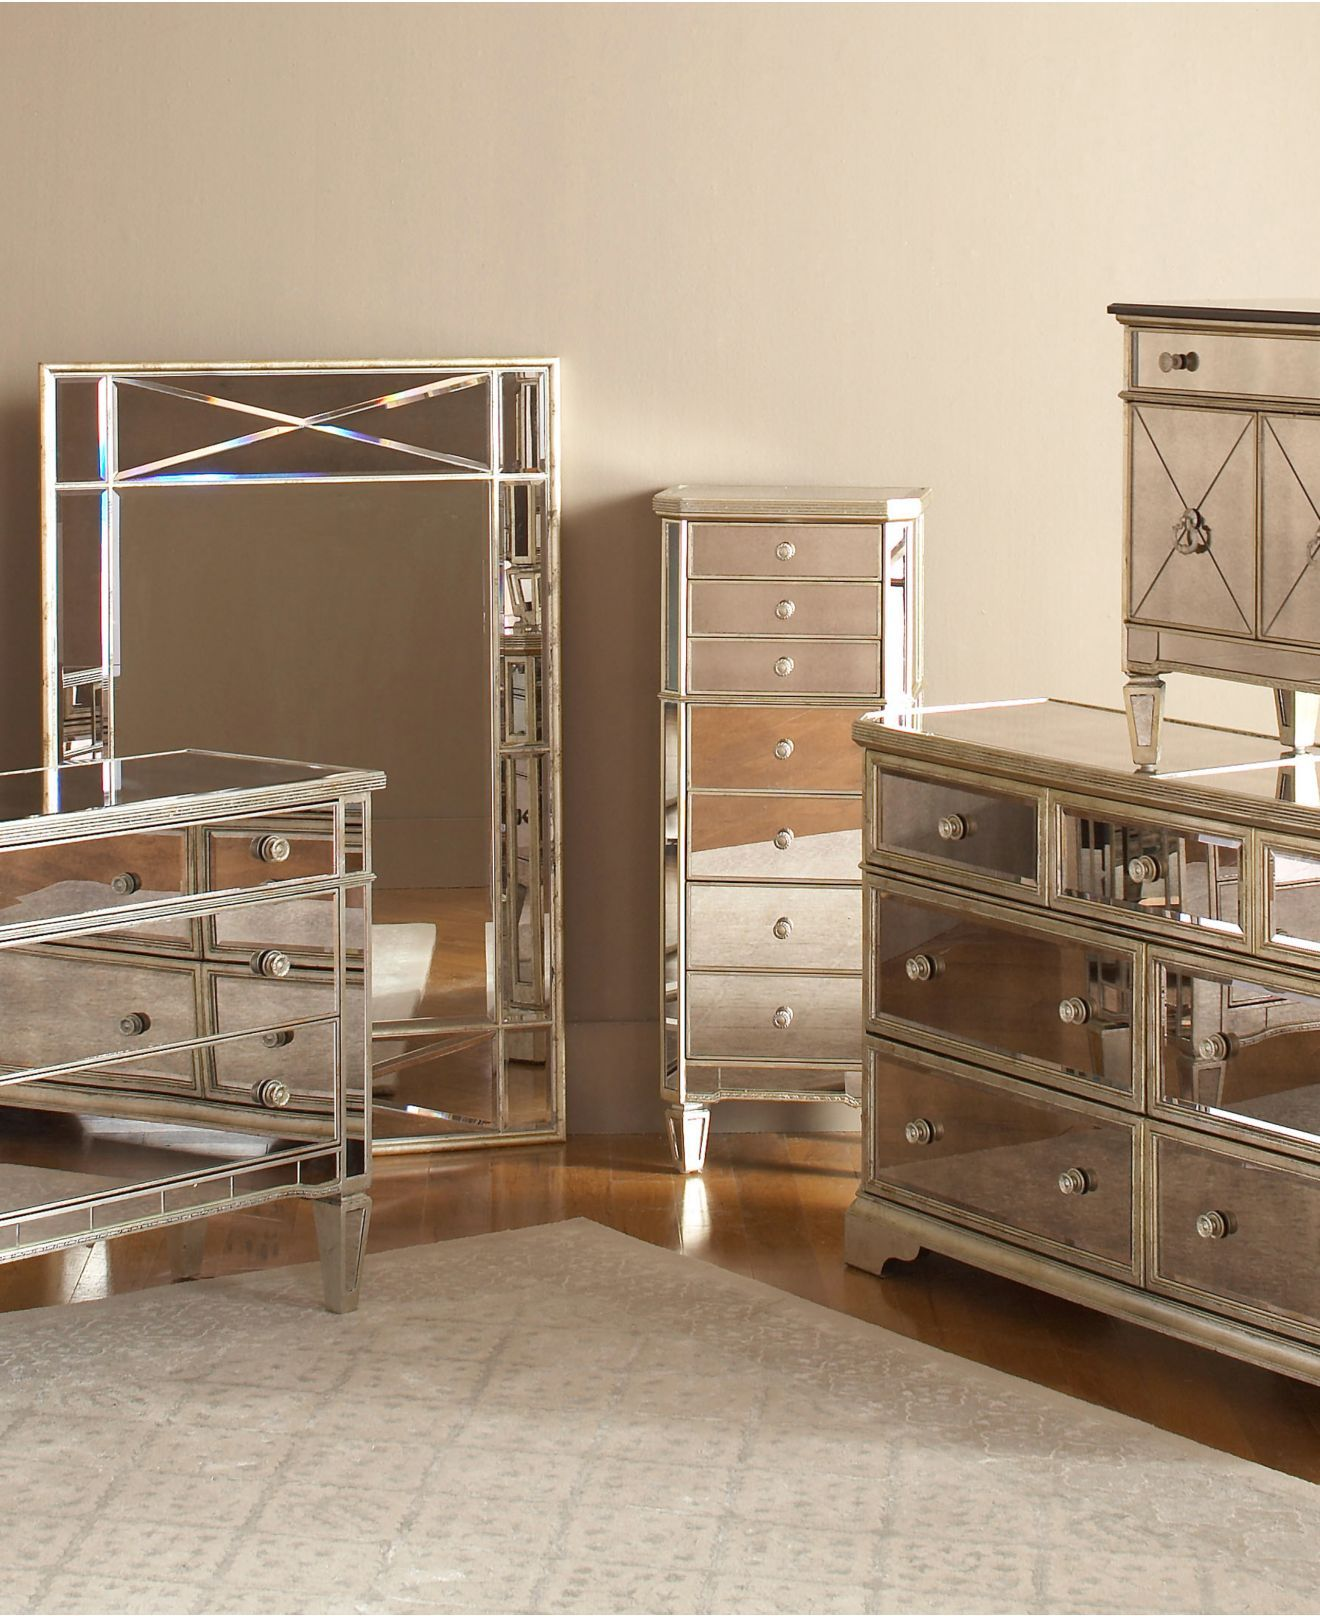 Marais Mirrored Furniture Collection | Pinterest ...